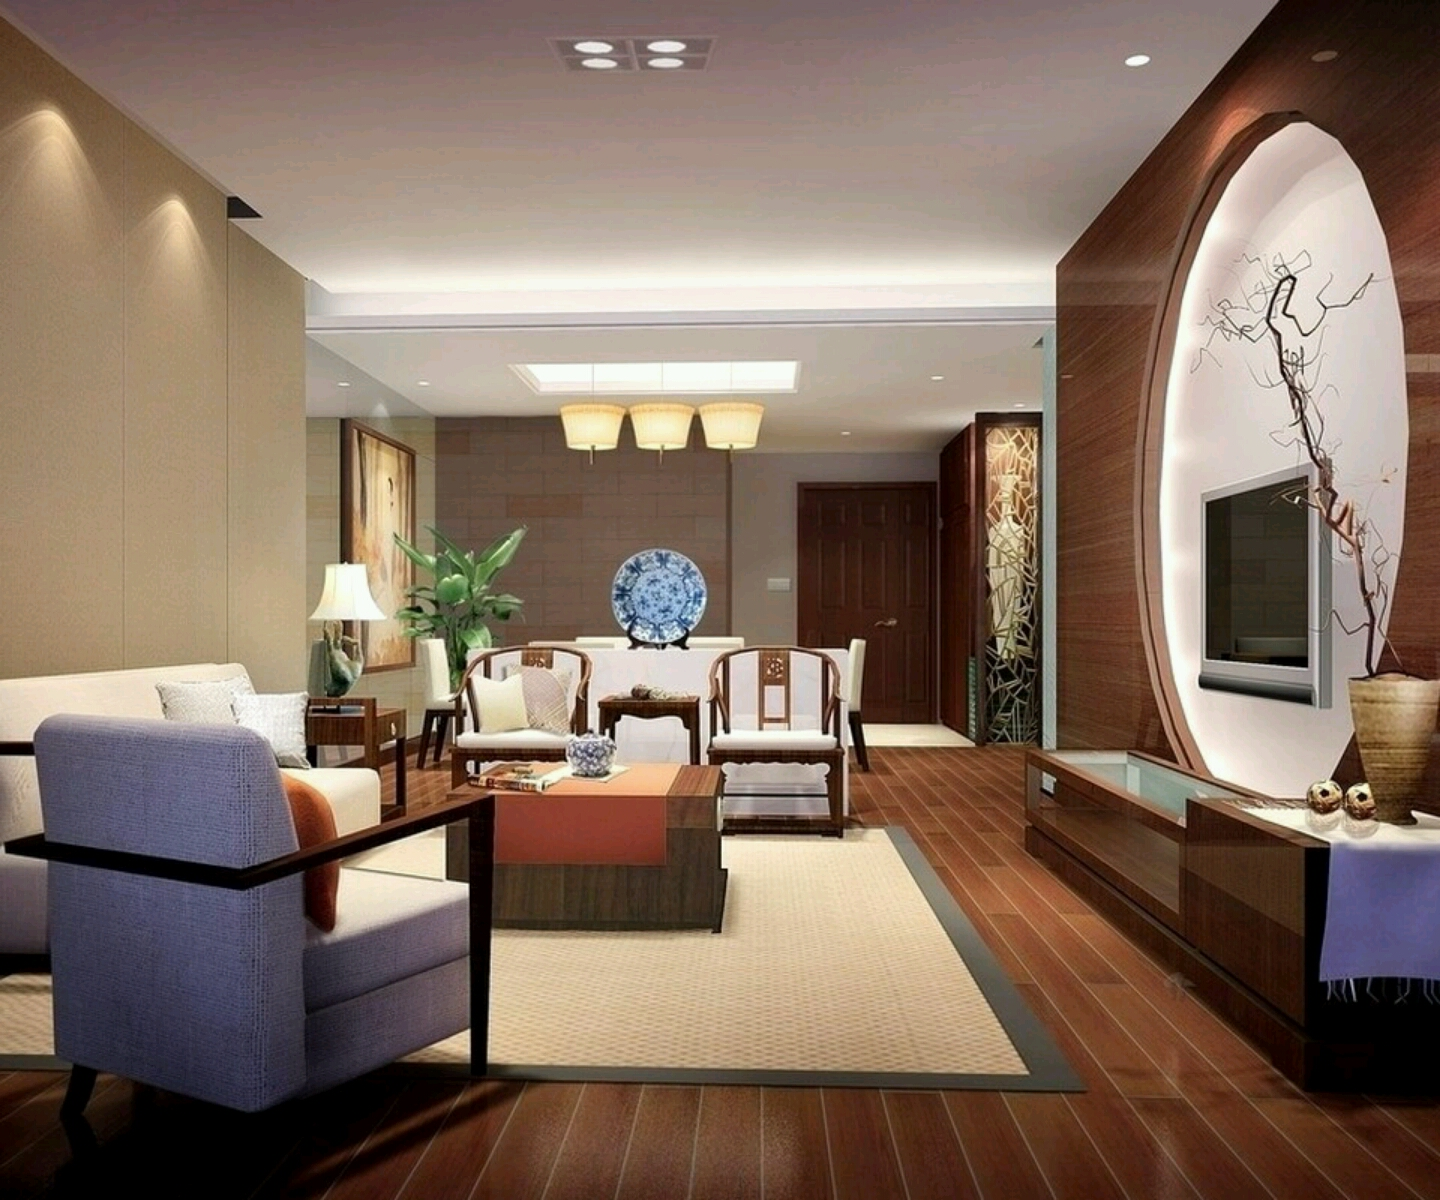 Luxury homes interior decoration living room designs ideas for Luxury house interior design